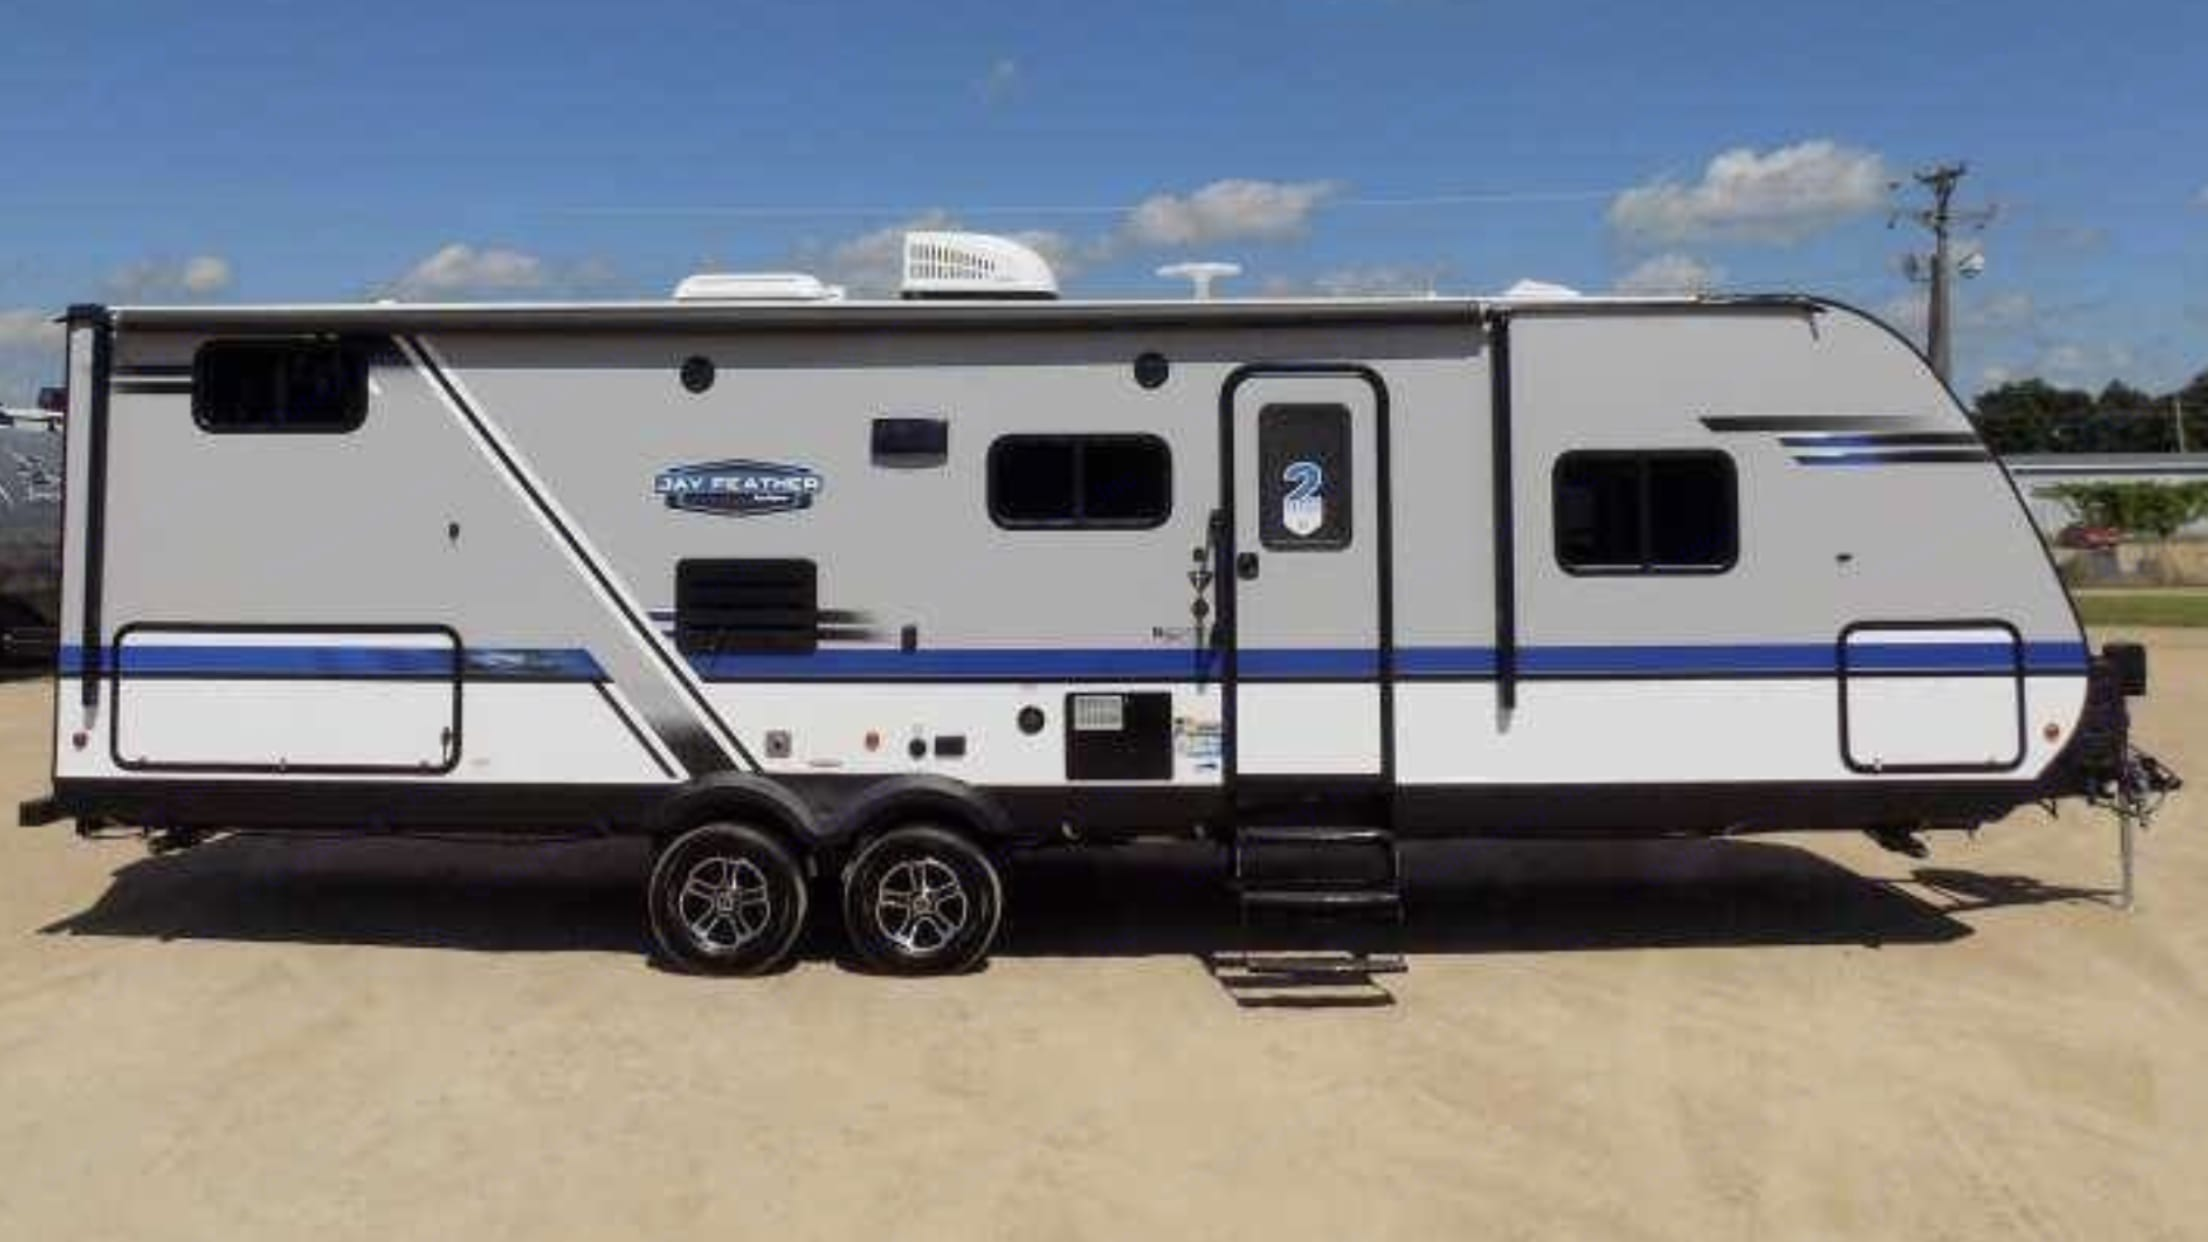 New beautiful RV! We take excellent care of our RV so you can enjoy the feeling of a new camper! . Jayco Jay Feather 2019